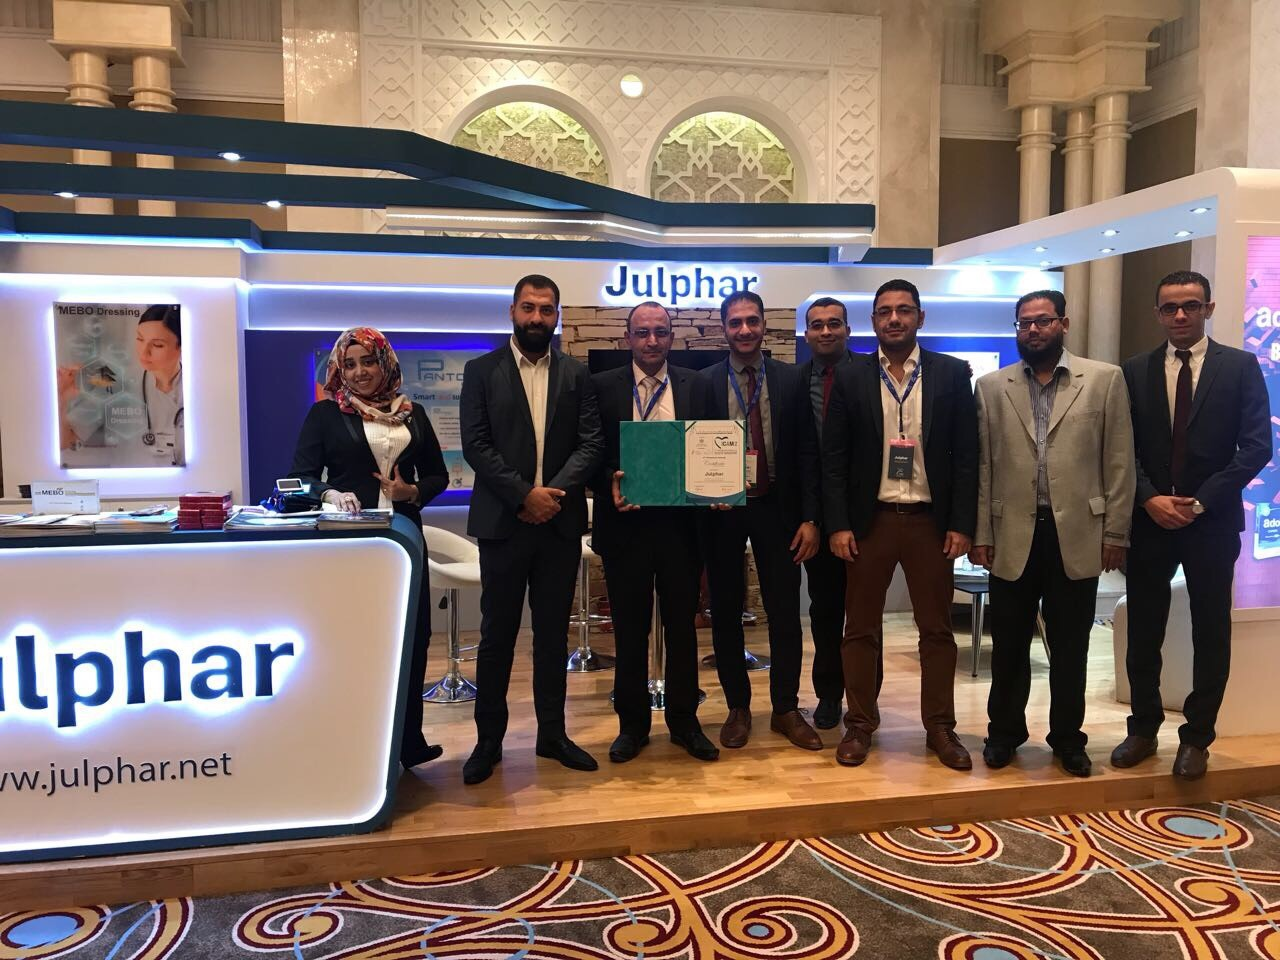 Julphar participated in 2nd International Conference on Acute Medicine